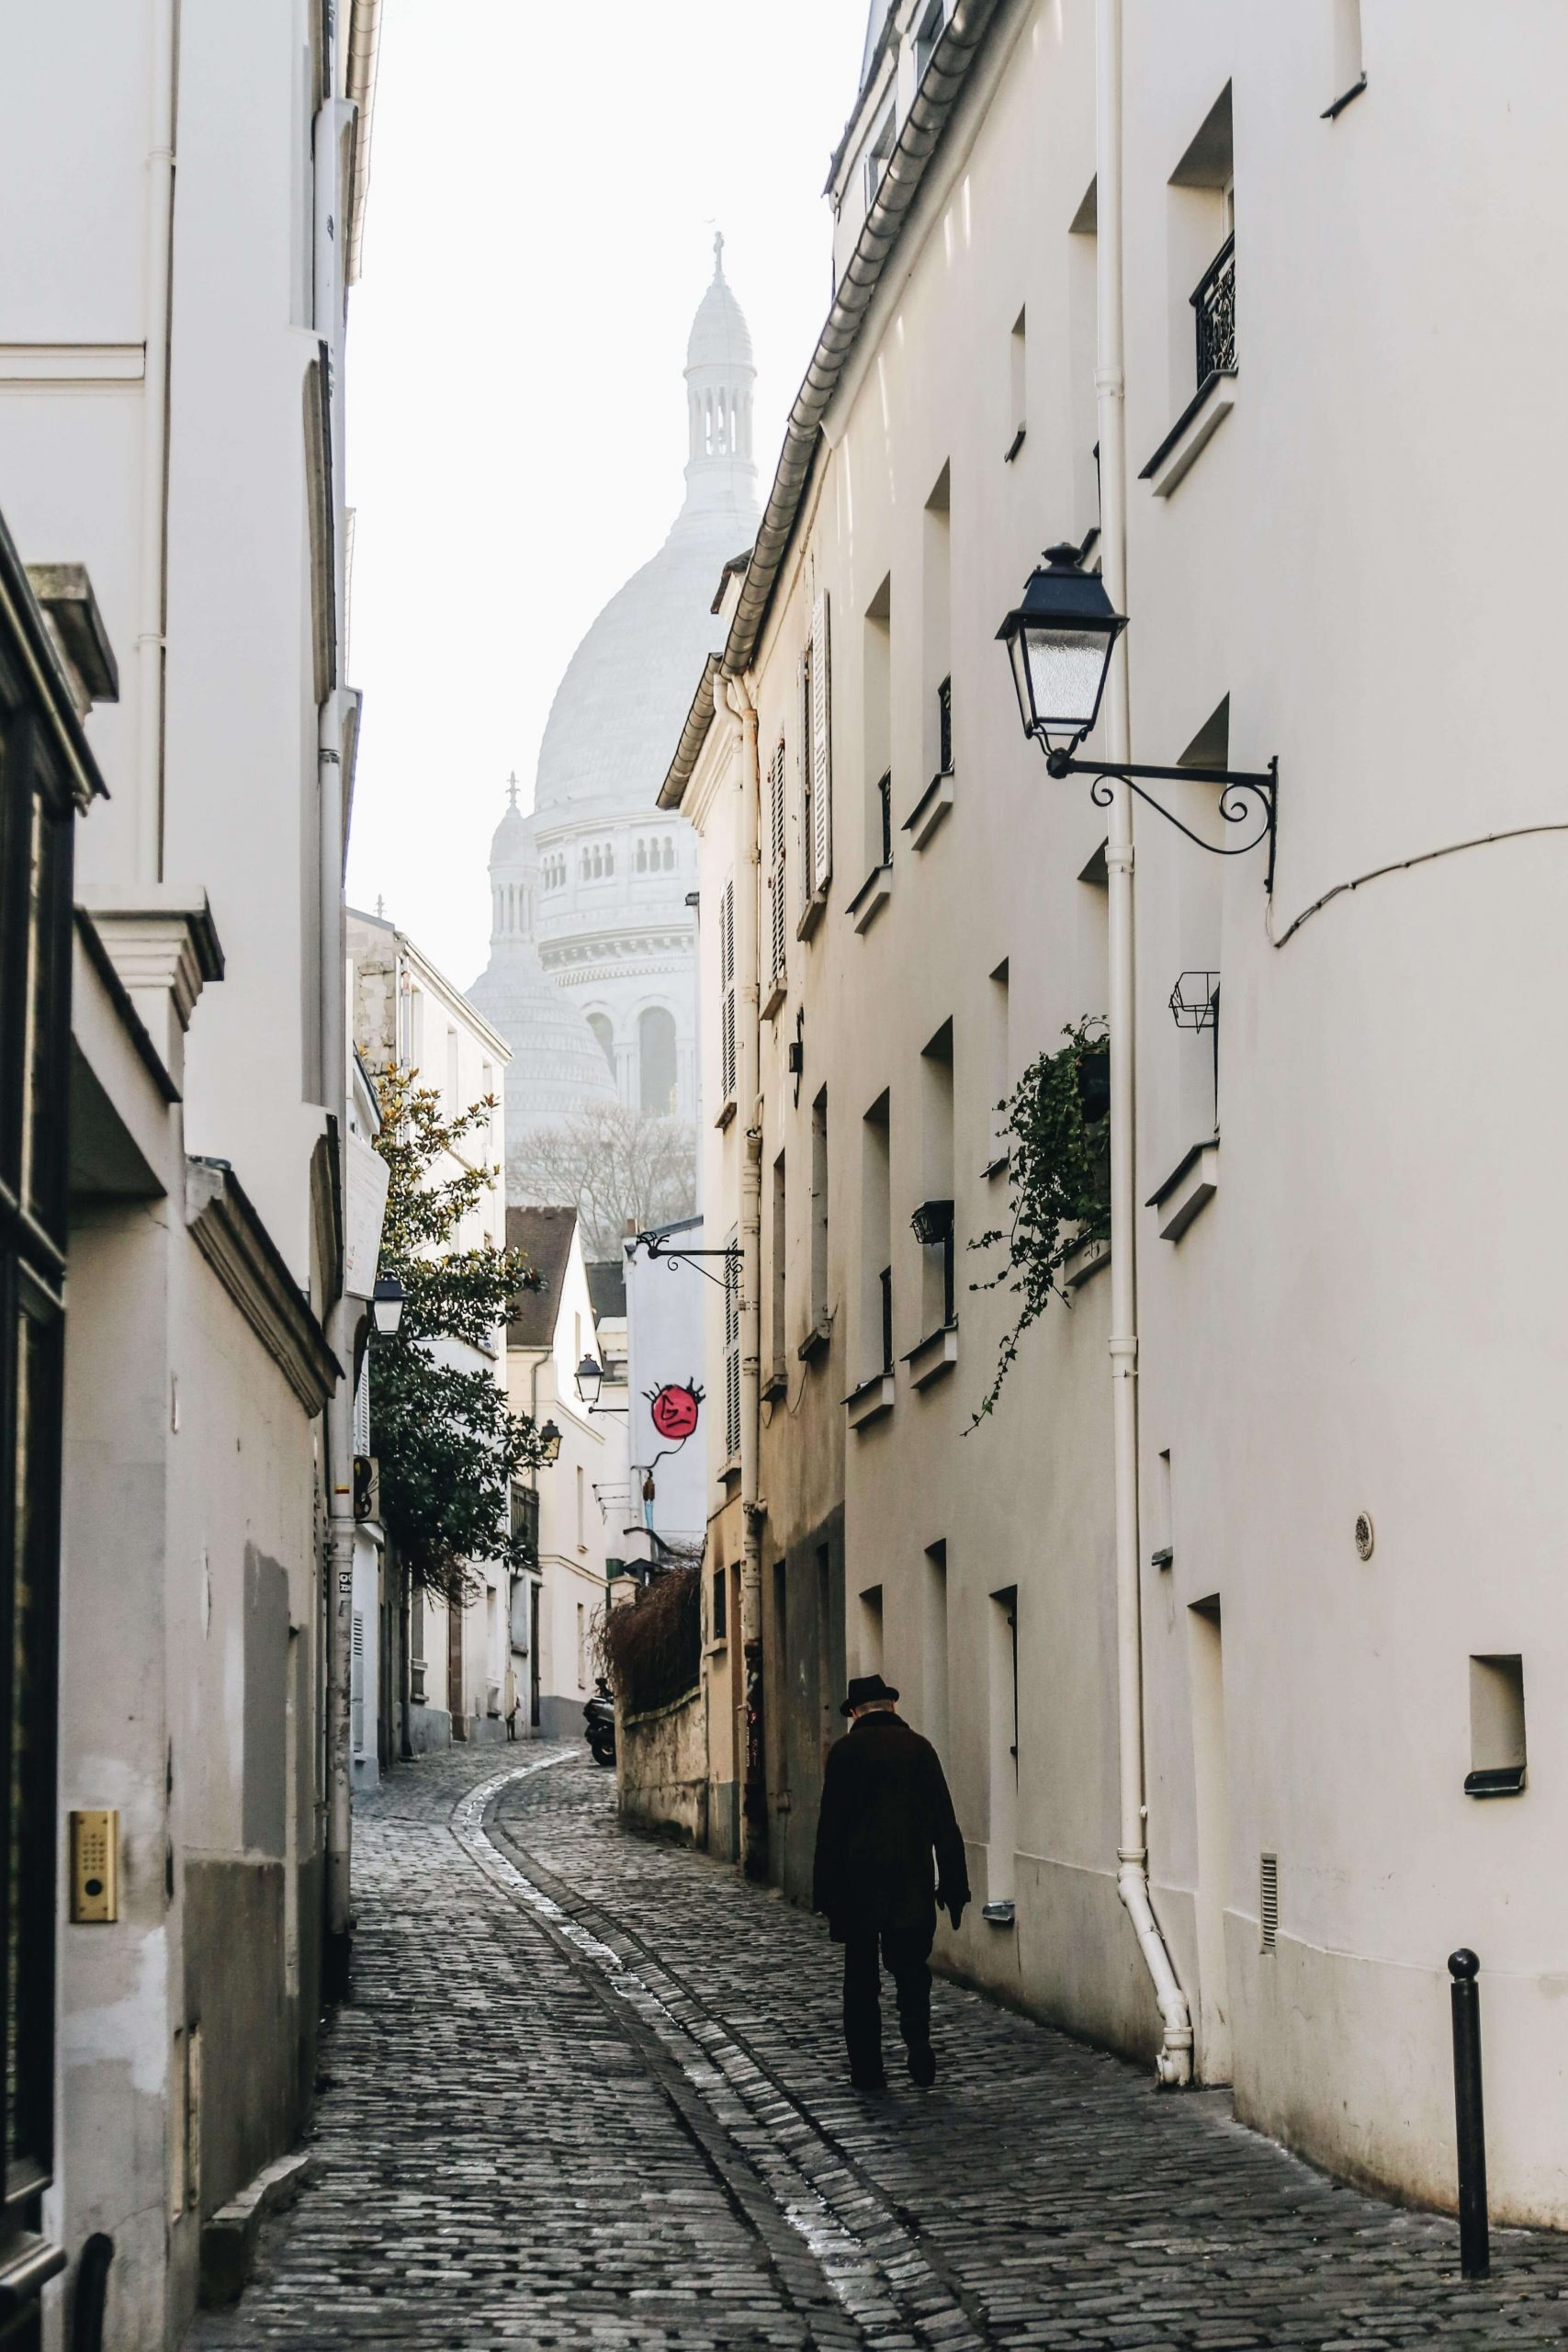 Winding streets in Montmartre